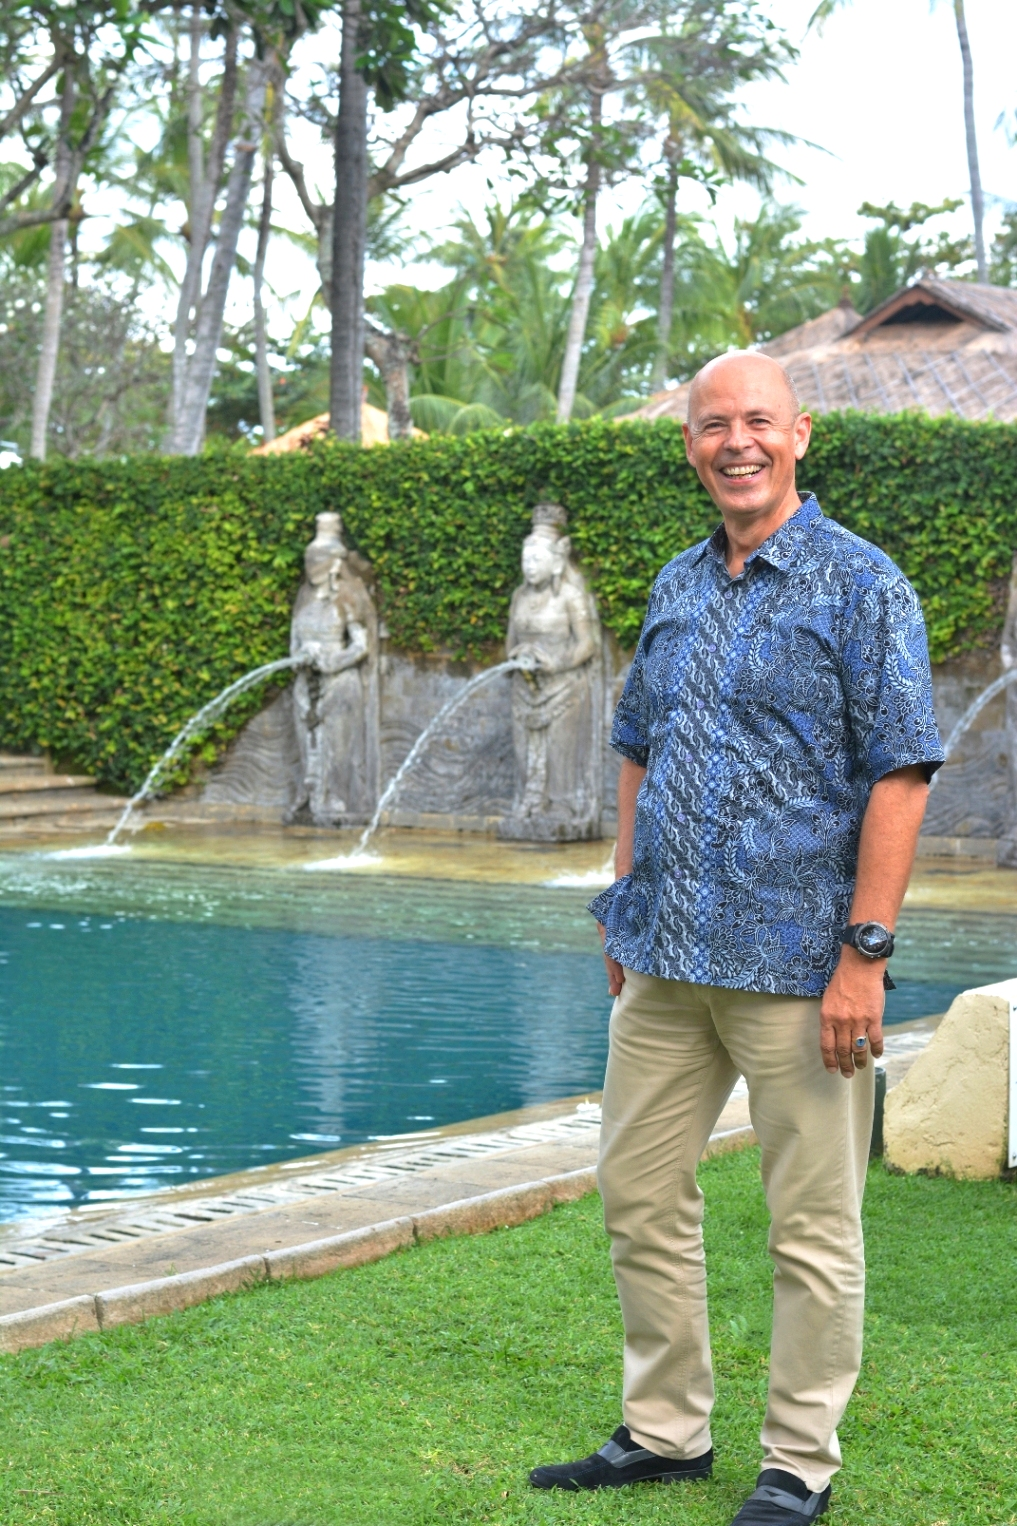 IHG APPOINTS MICHAEL KOTH AS GENERAL MANAGER OF INTERCONTINENTAL BALI RESORT & DIRECTOR OF OPERATIONS FOR AMEA RESORTS MALAYSIA, INDONESIA & THAILAND